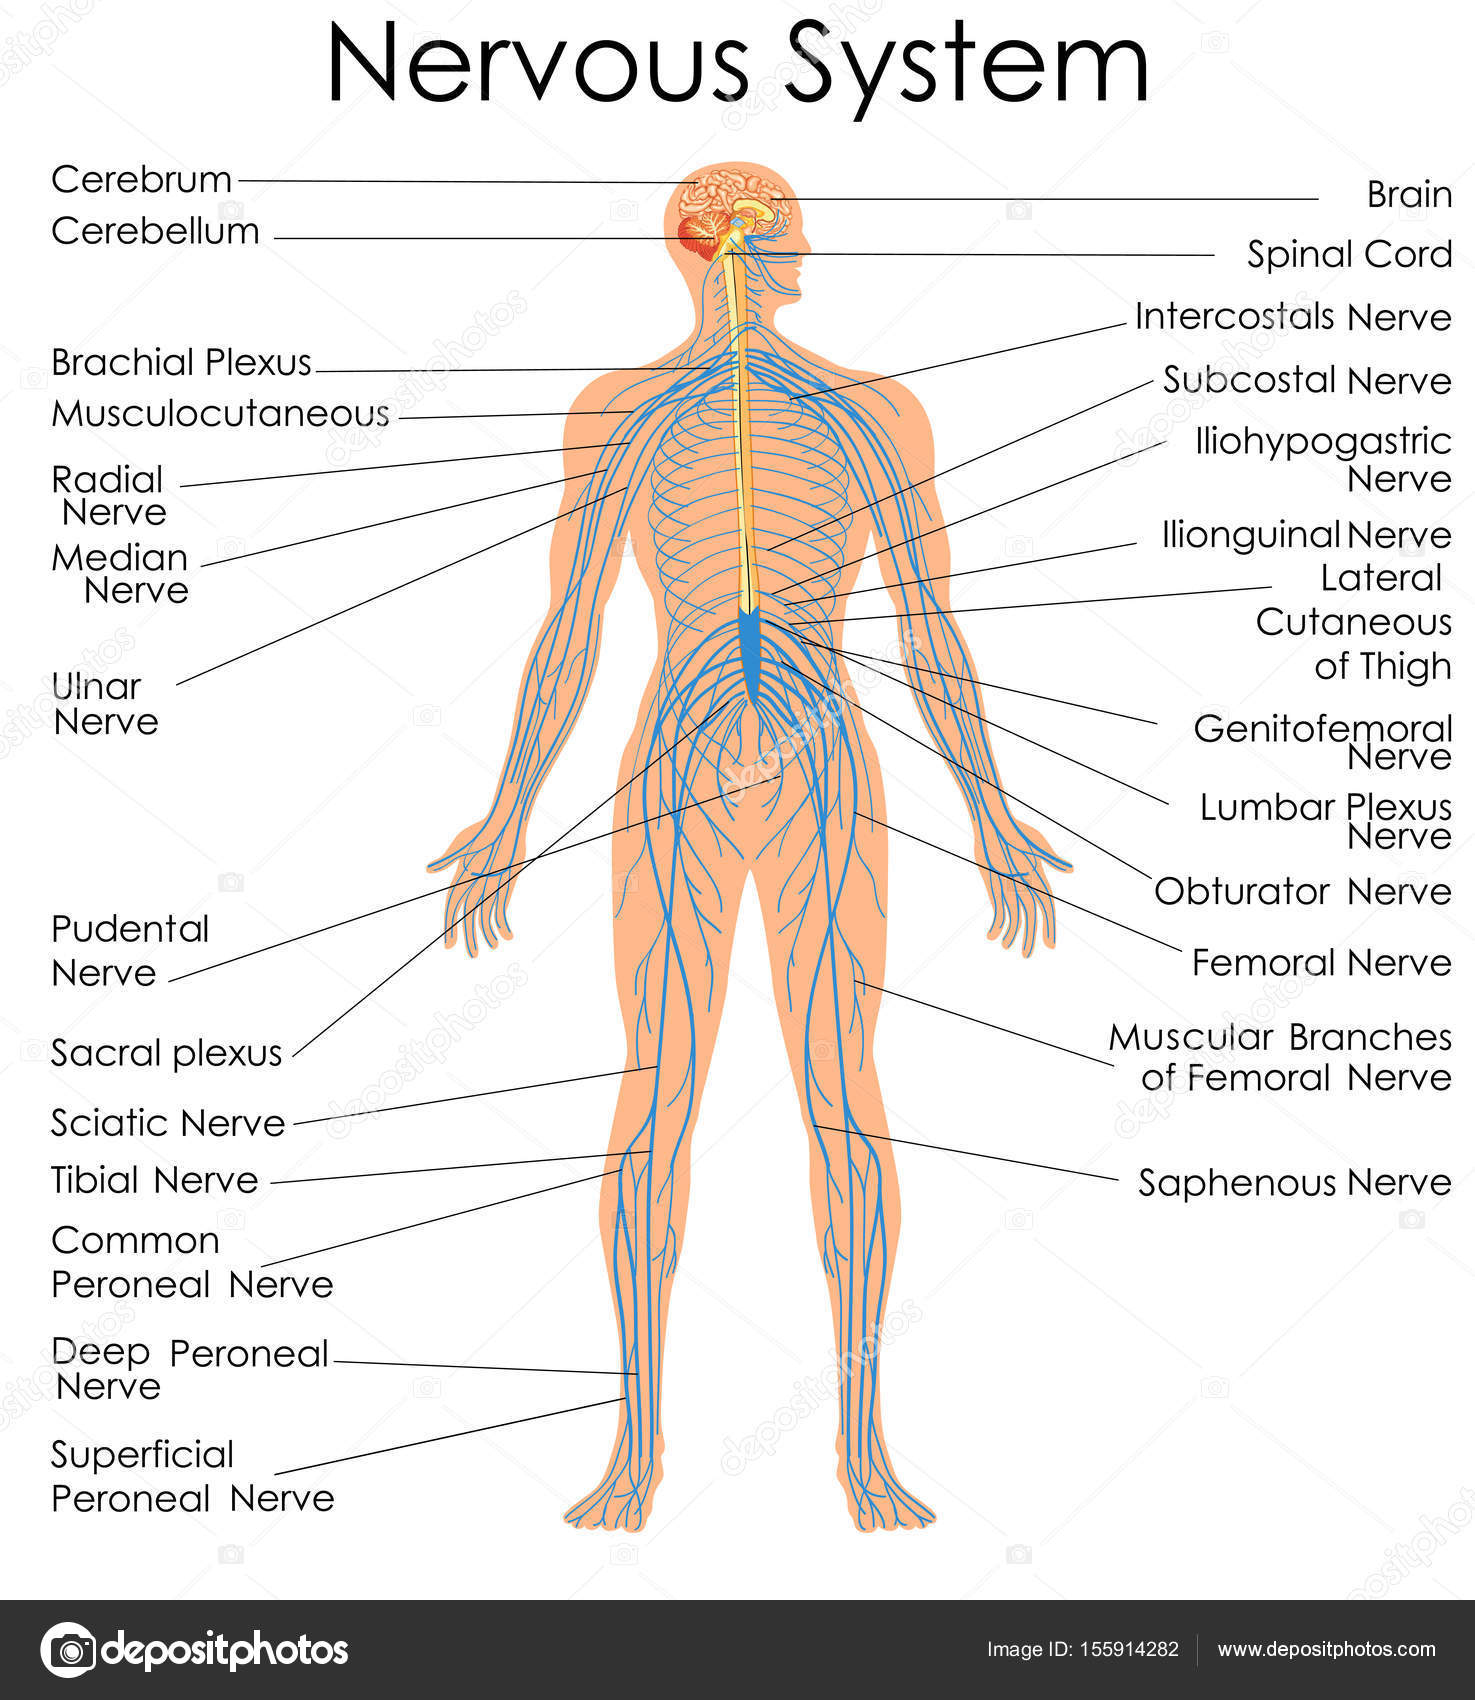 Diagram of nervous system of the leg search for wiring diagrams medical education chart of biology for nervous system diagram rh depositphotos com nervous system diagram labeled nervous system diagram labeled ccuart Image collections